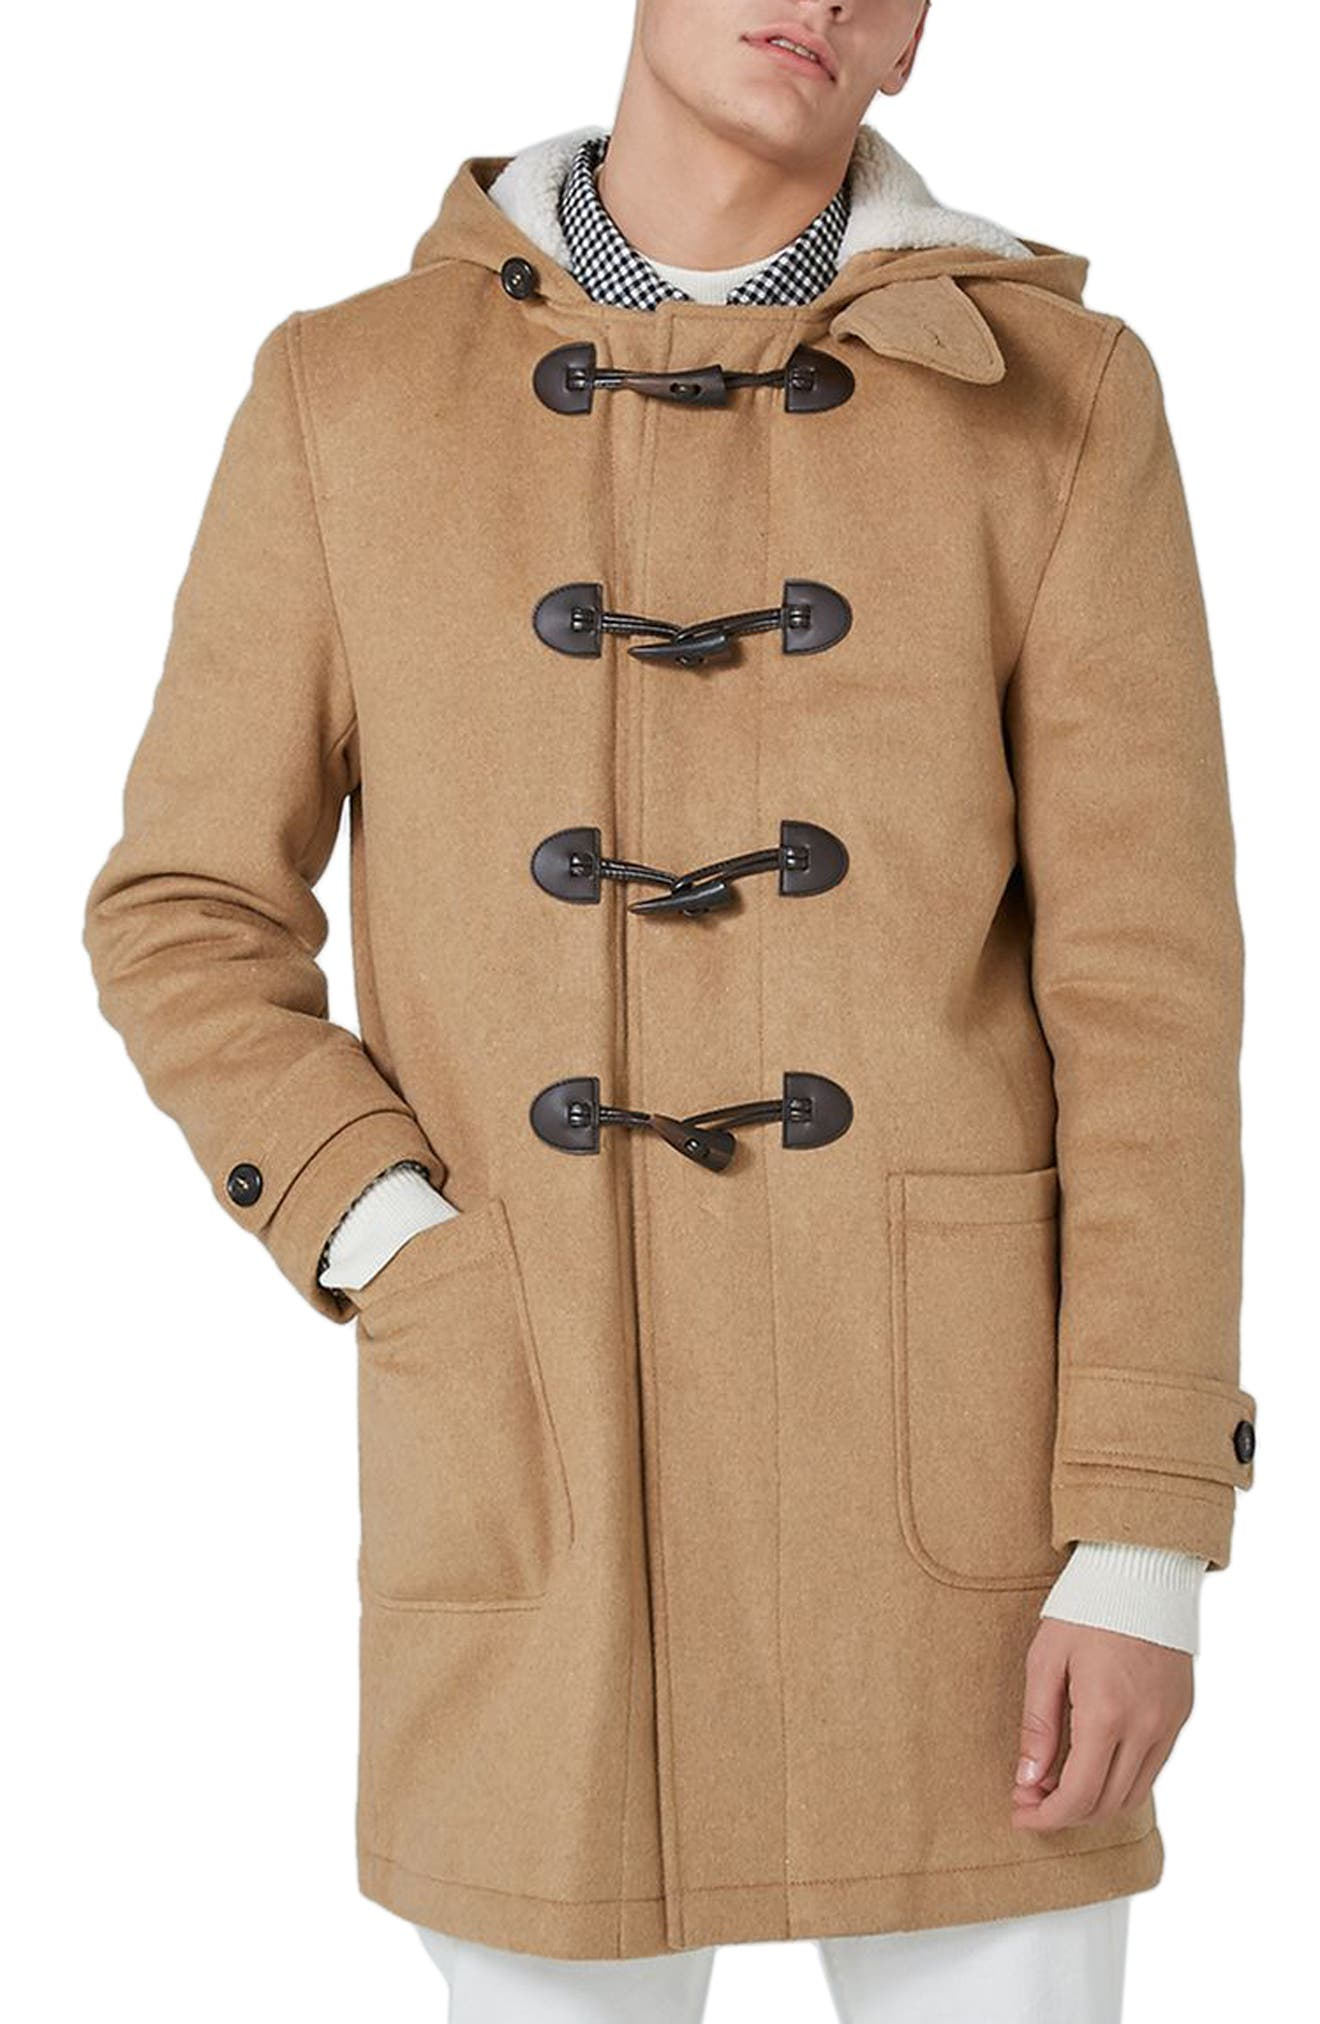 Borg Lined Duffle Coat,                             Main thumbnail 1, color,                             230